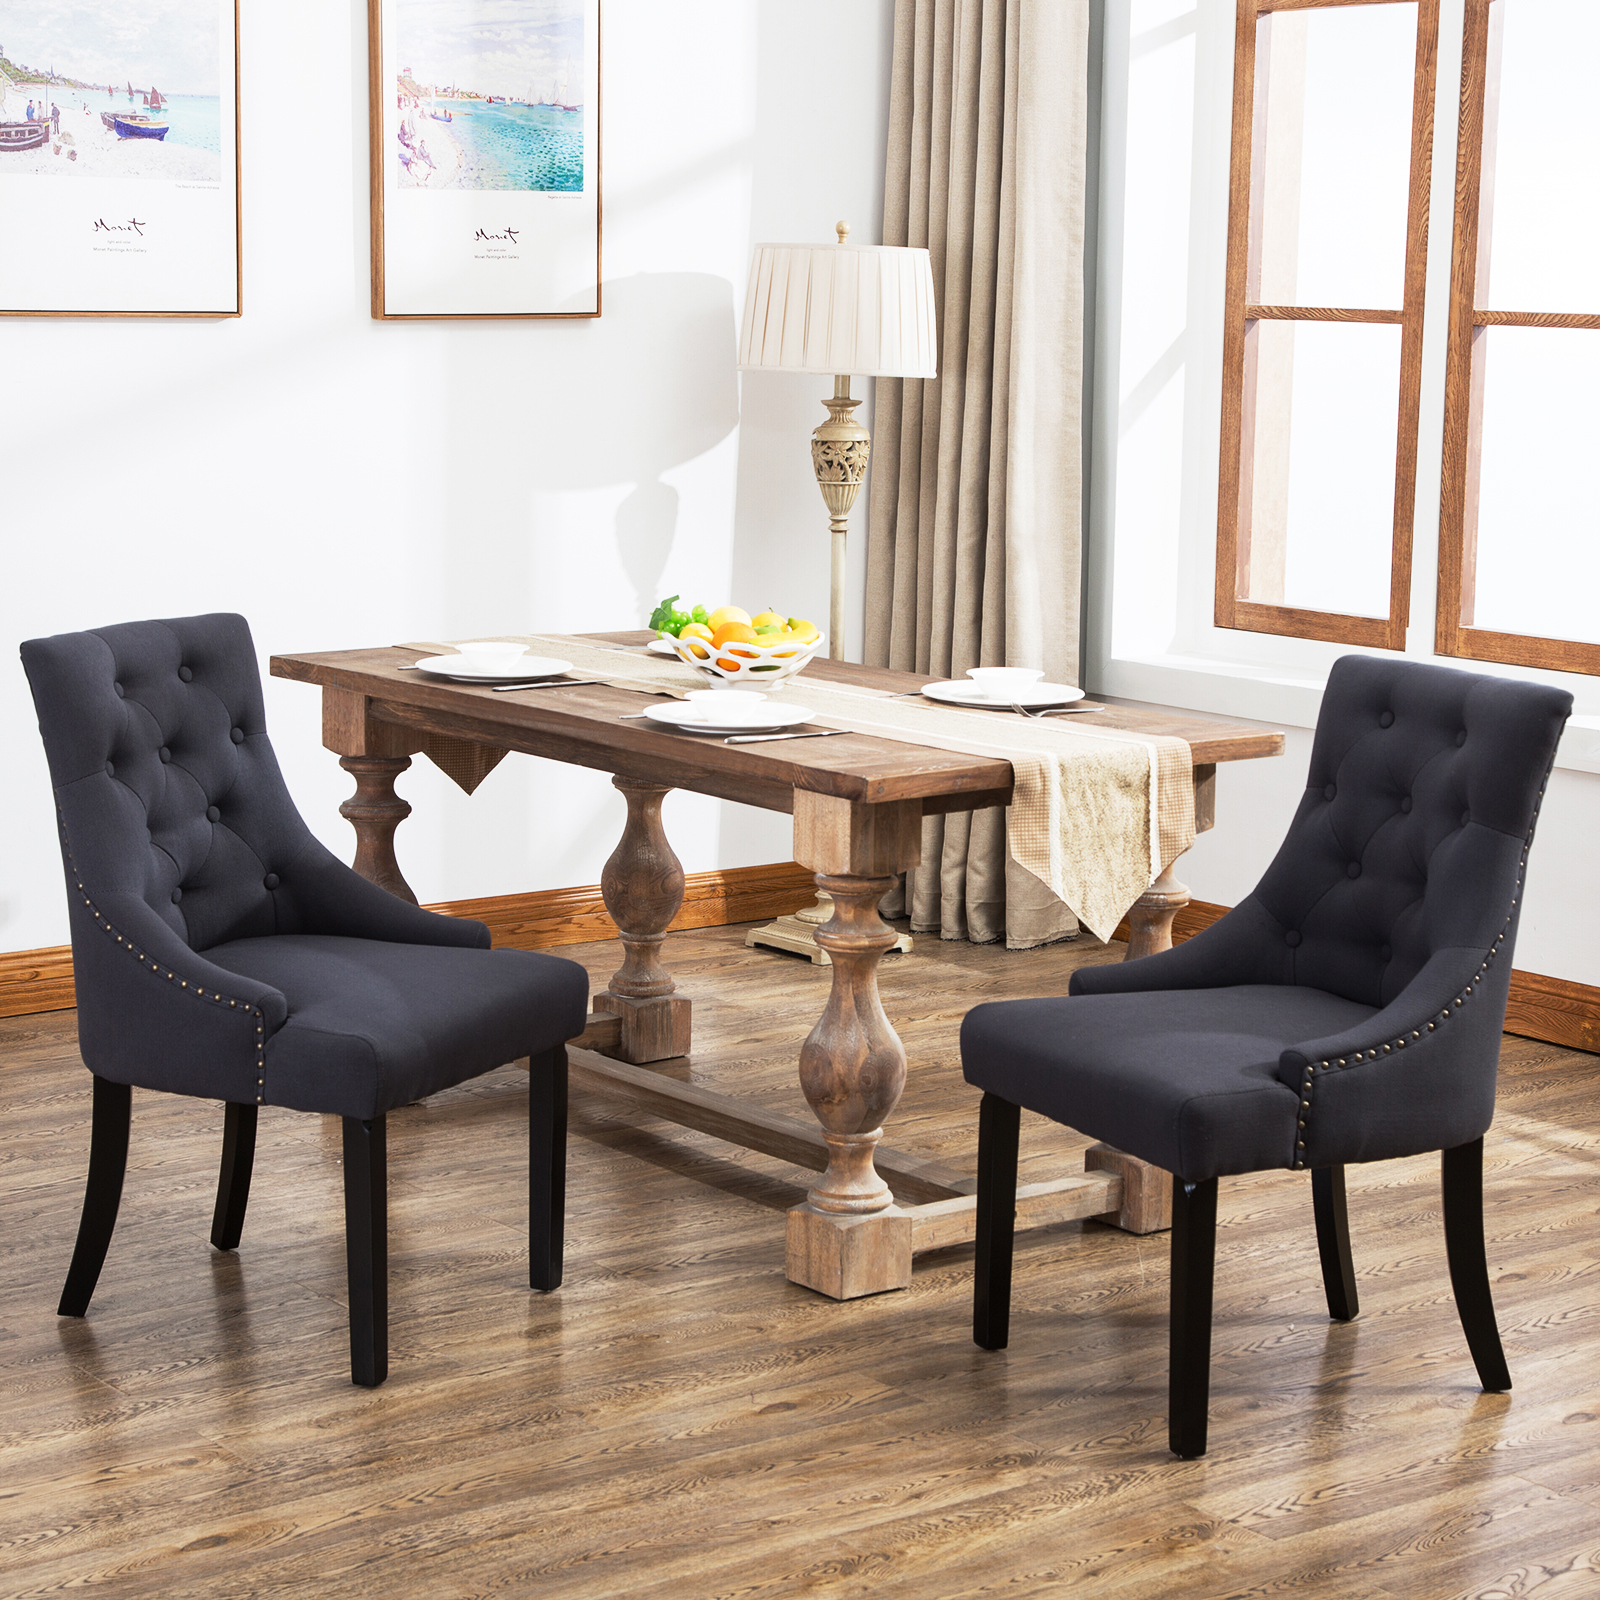 details about set curved shape linen fabric upholstered accent dining chair black furniture tufted dark grey nest tables marble top coffee table oval outdoor mirage mirrored